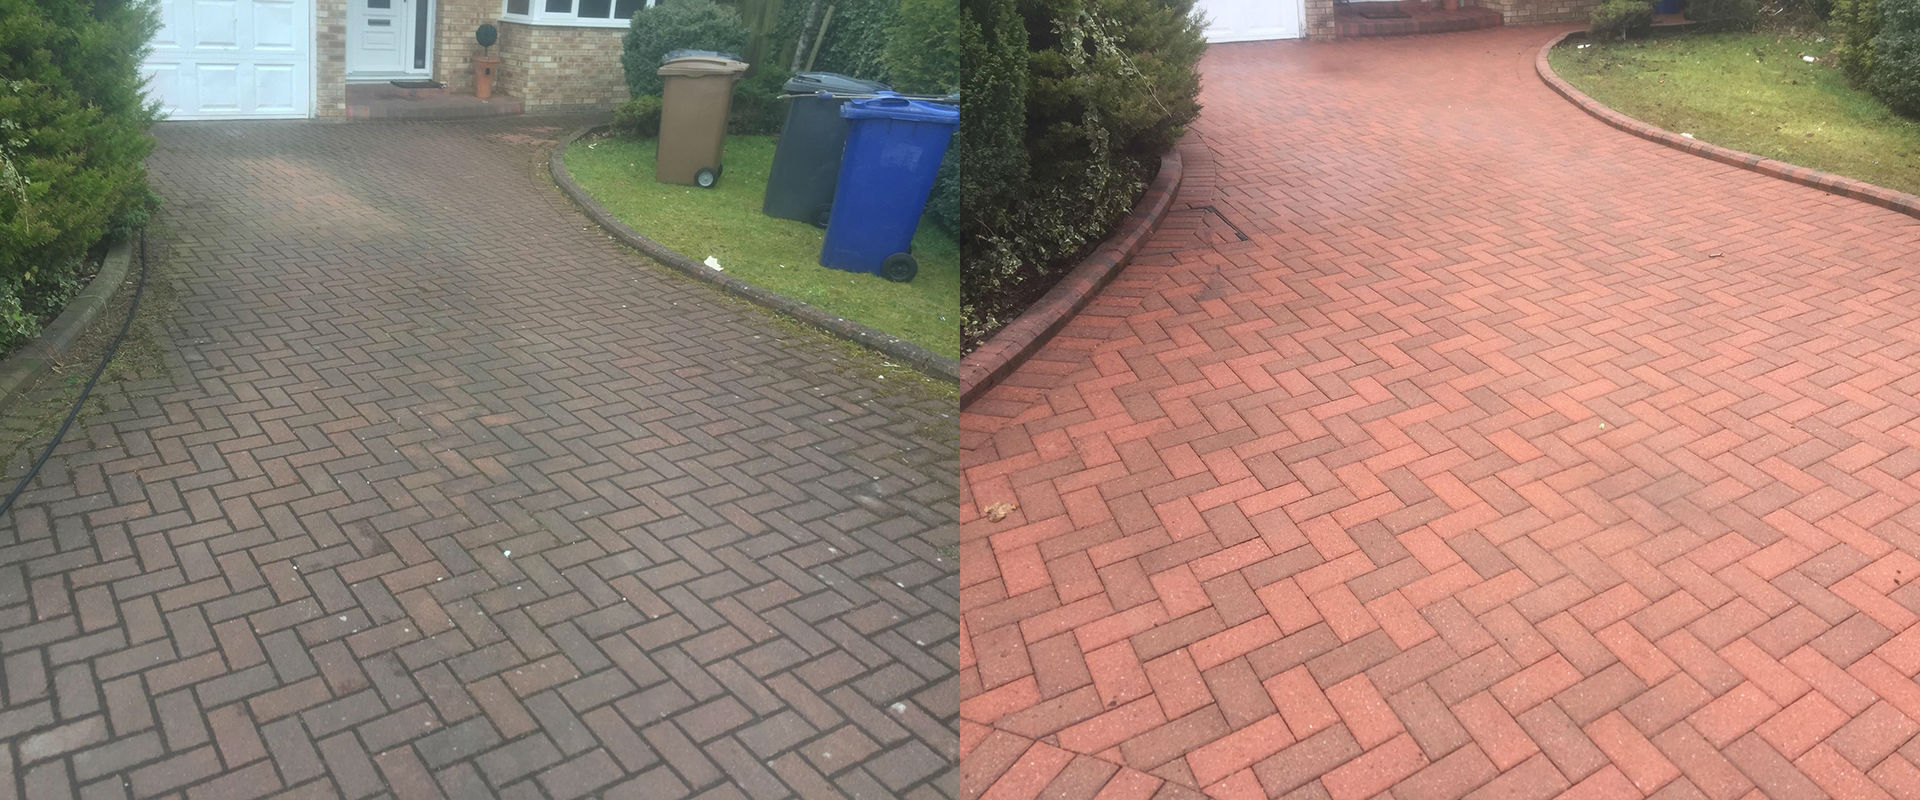 Residential Pressure Washing Glasgow, Scotland